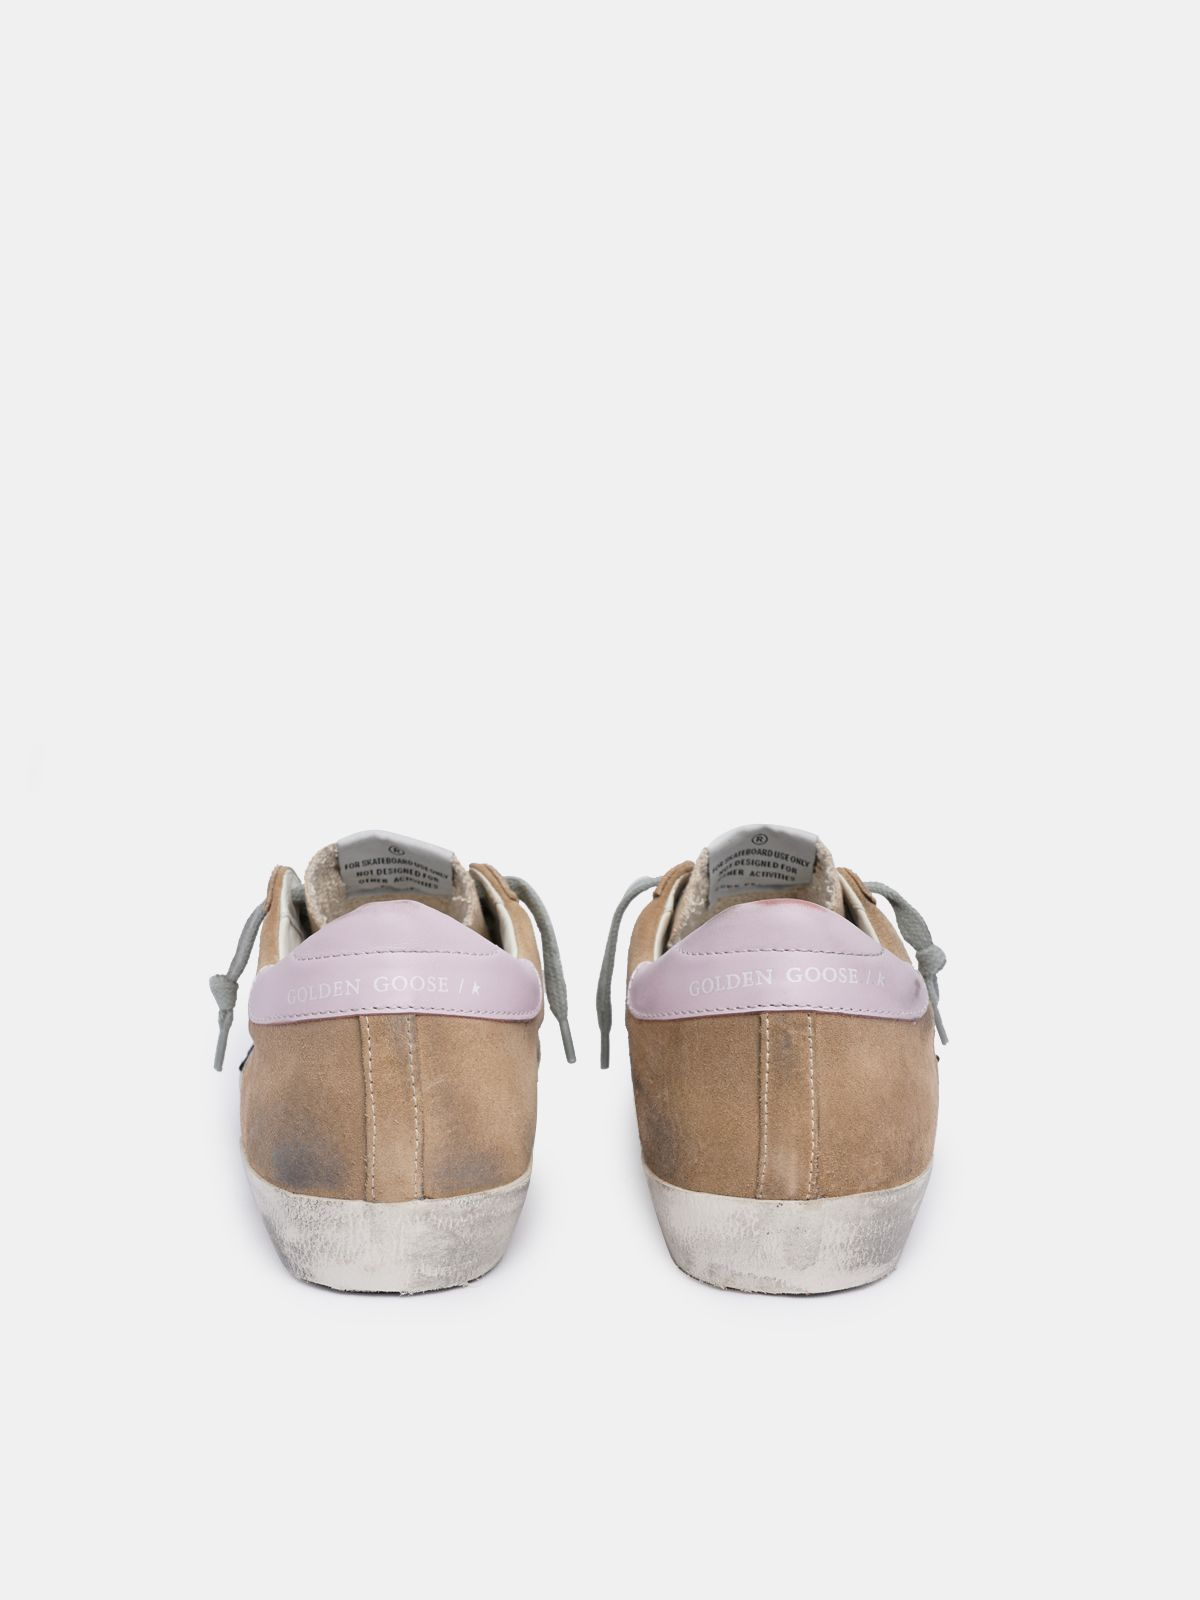 Golden Goose - Sneakers Super-Star in suede marrone con talloncino rosa in